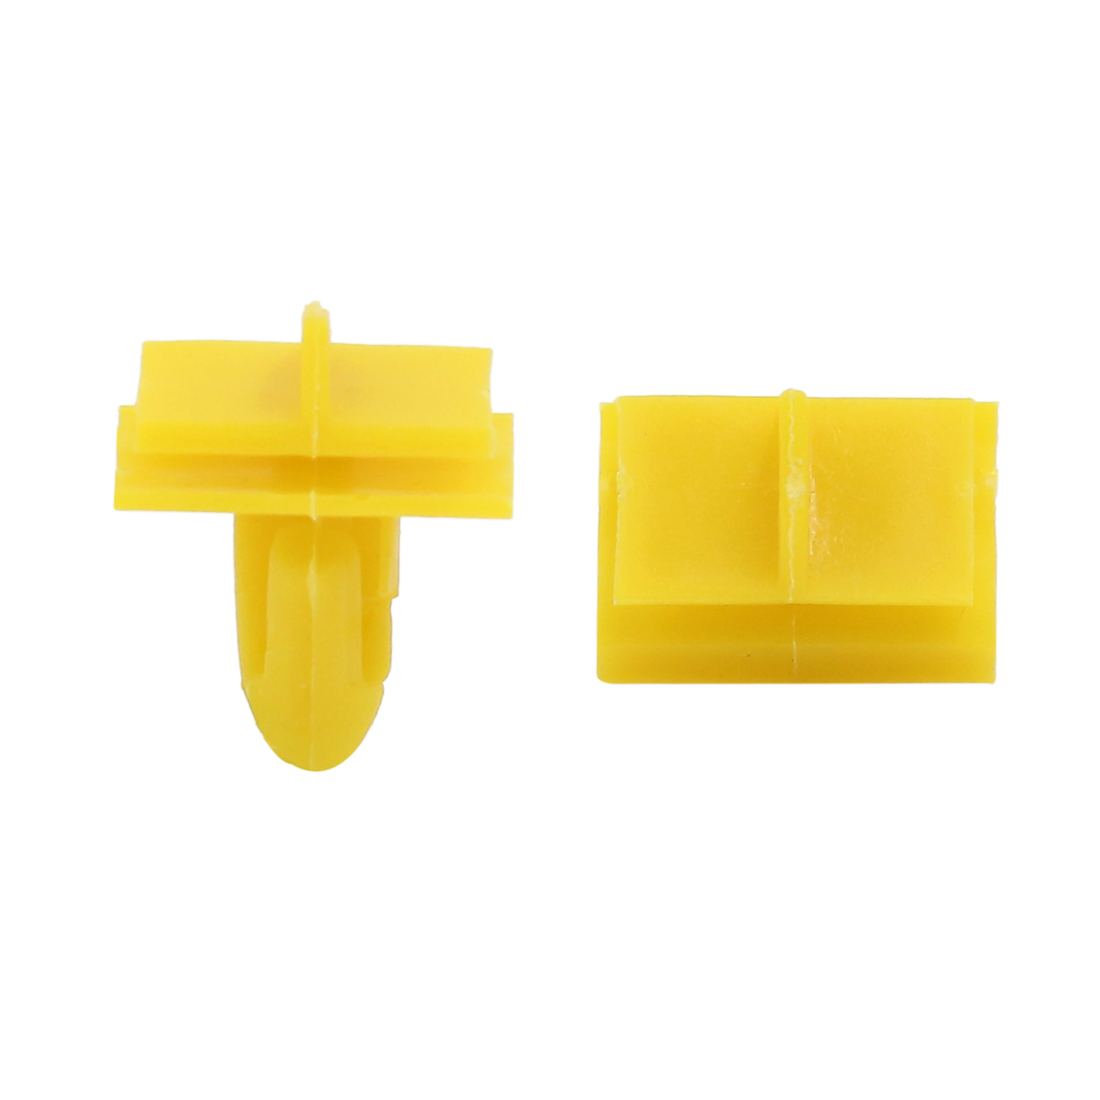 50Pcs 9mm Hole Yellow Plastic Rivets Fastener Splash Guard Clips for Car Fender